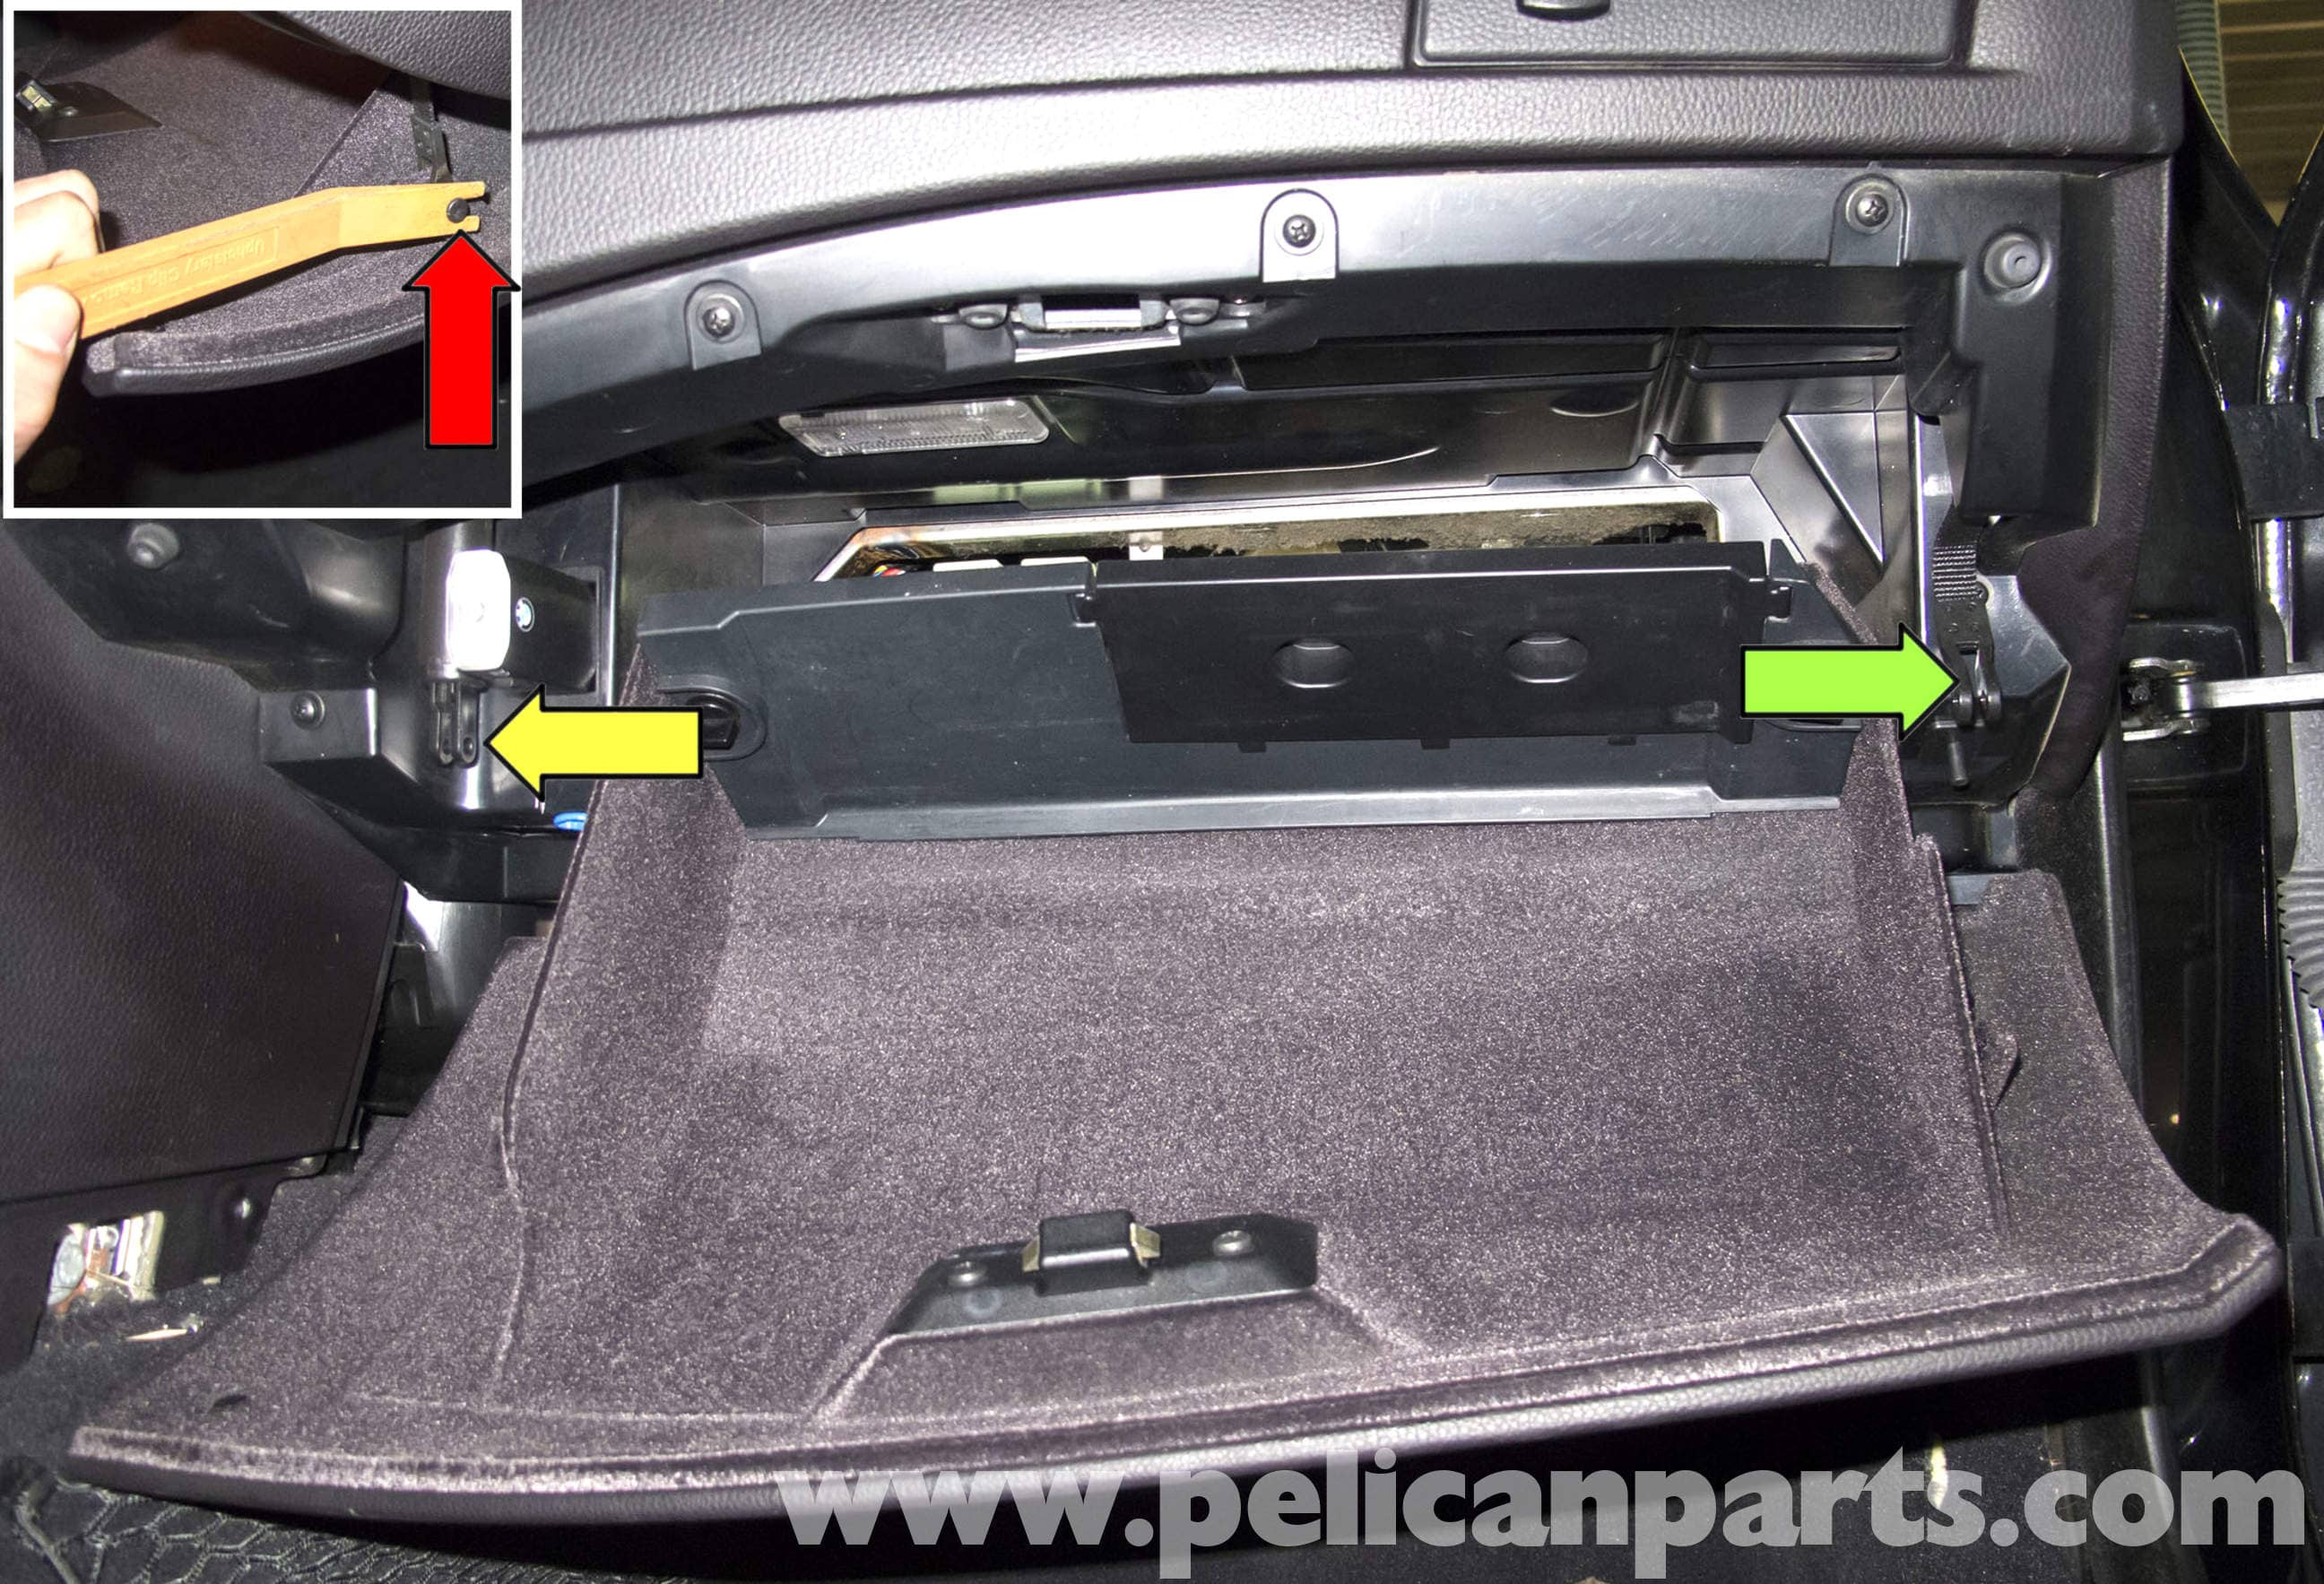 pic01 bmw 535i fuse box 2011 bmw 535i fuse diagram \u2022 free wiring E63 M6 White at mifinder.co